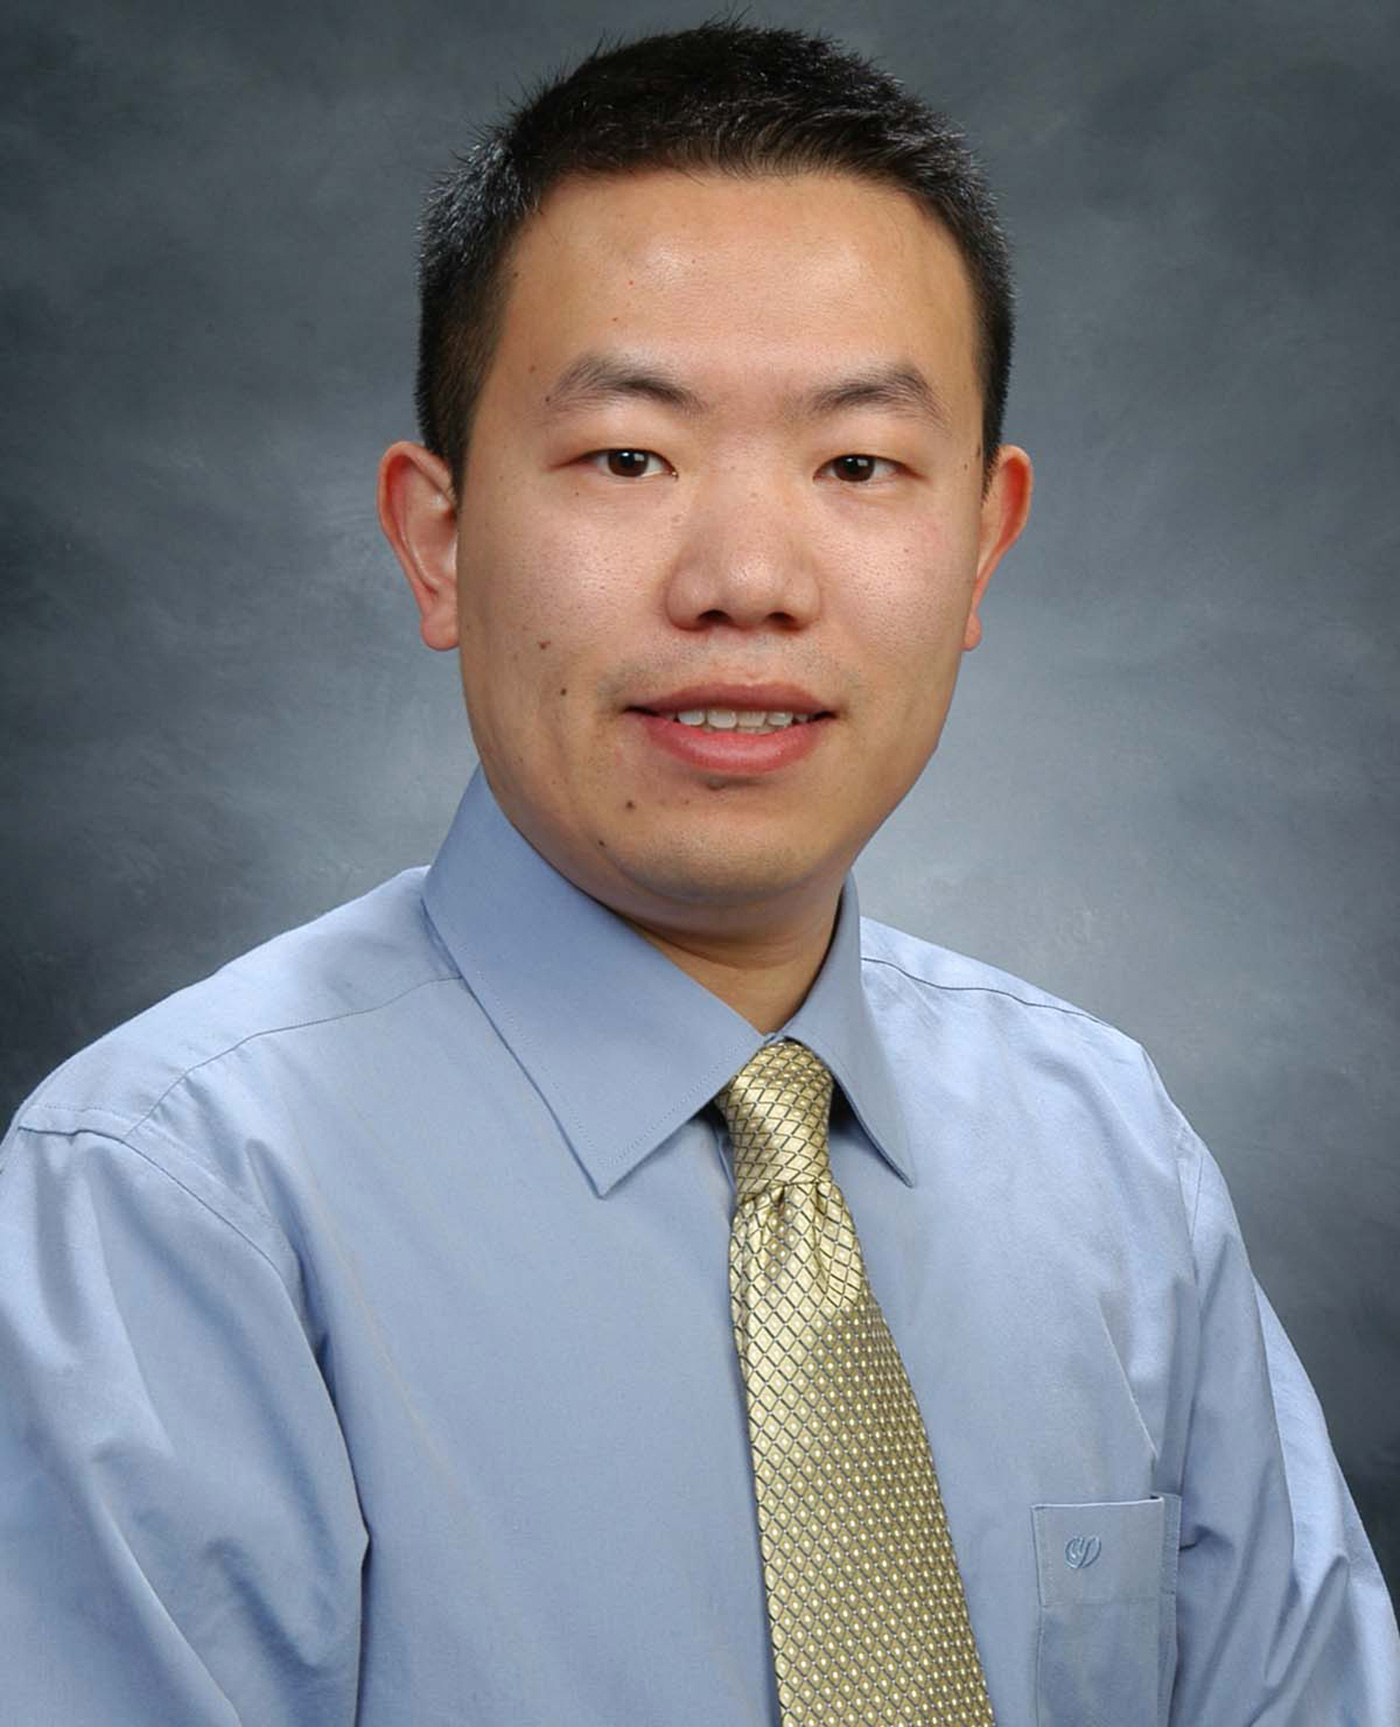 Yan Luo is a Professor in the Francis College of Engineering's Electrical & Computer Engineering Dept. at UMass Lowell